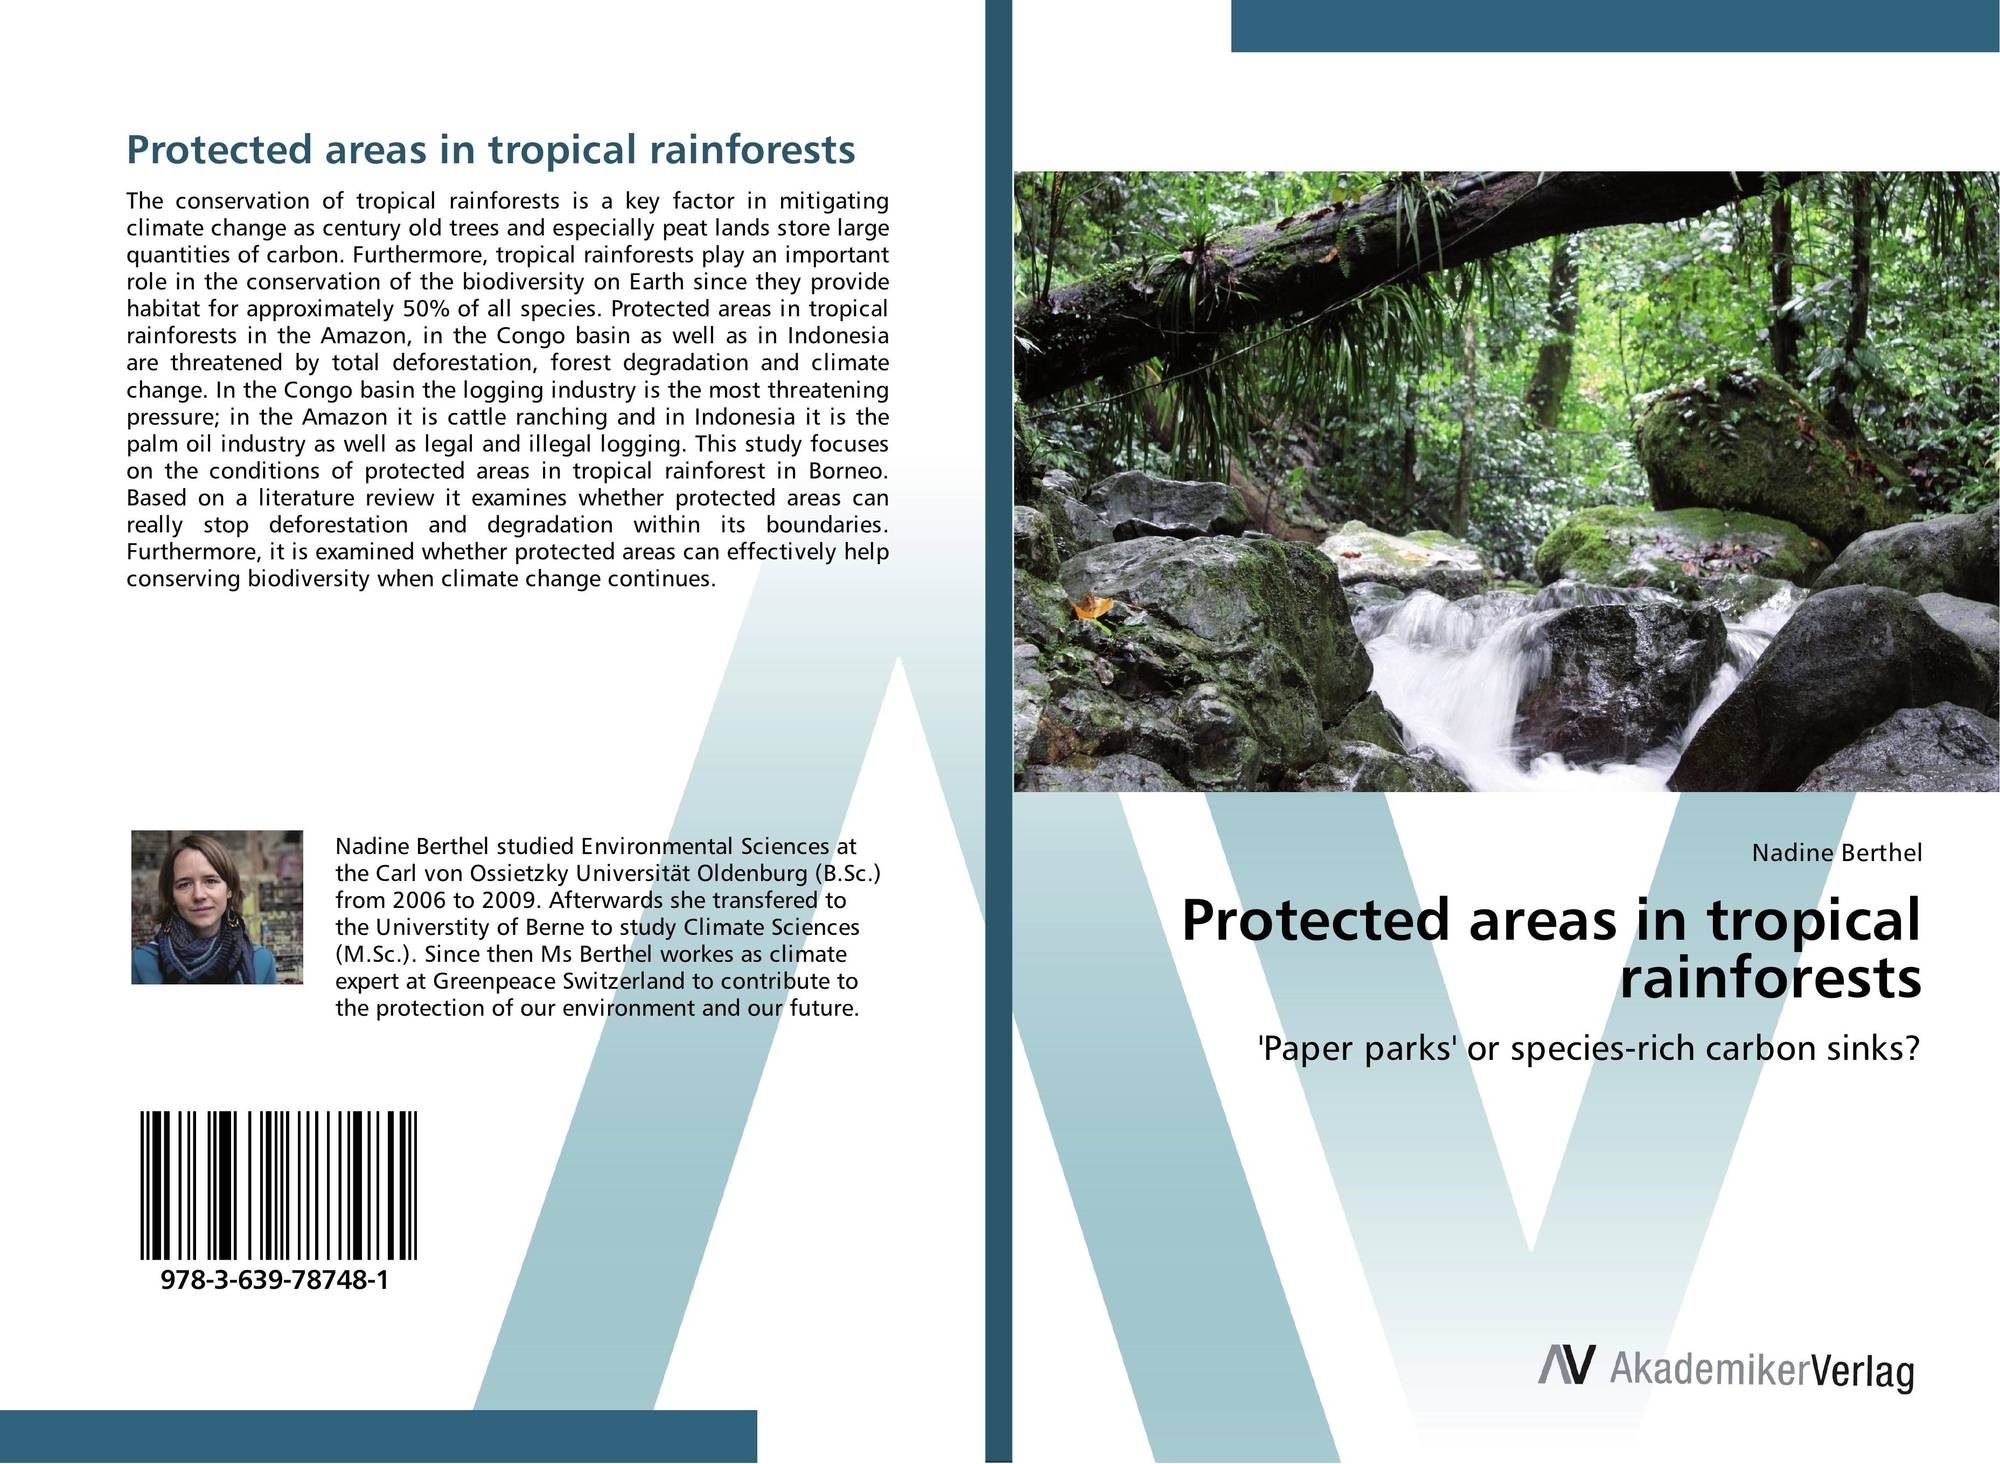 deforestation in the amazon rainforest literature review Deforestation of the amazon rainforest continued to accelerate in  forest destruction and sustainable agriculture in the brazilian amazon: a literature review.